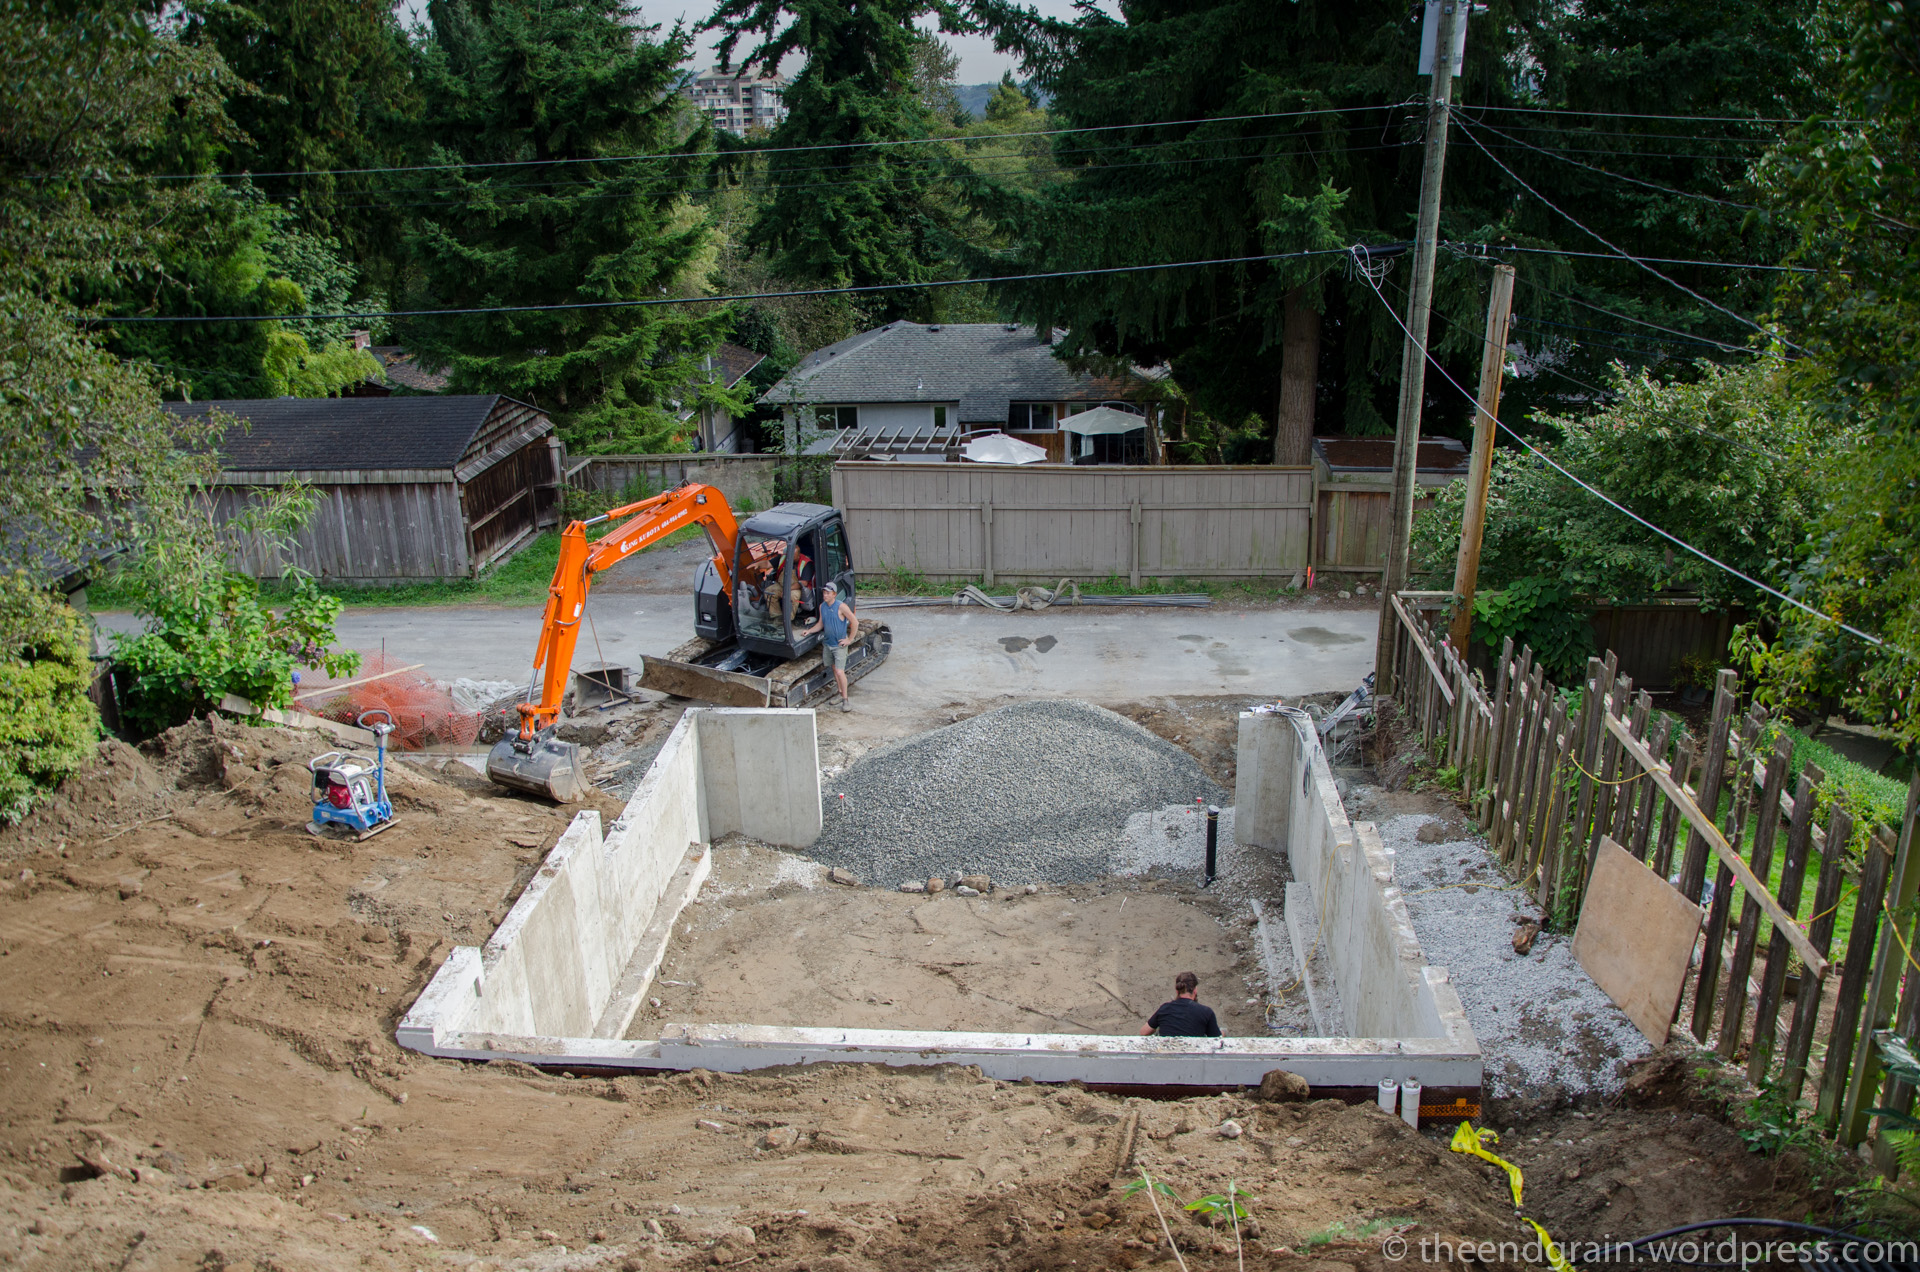 Backfill tamped with excavator bucket and compactor